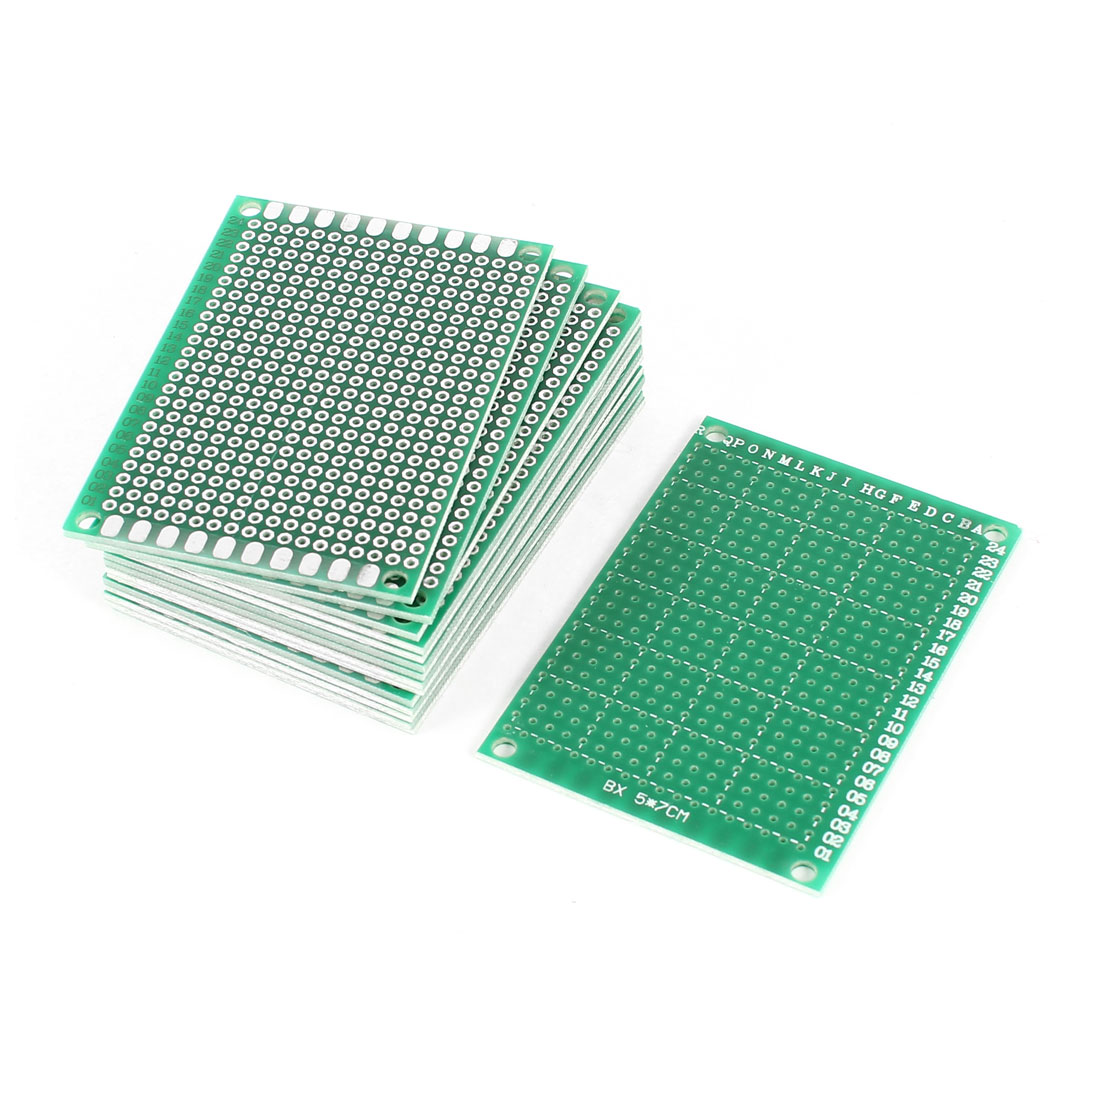 15 PCS 5cm x 7cm Single Sided Prototype Paper Tinned Universal DIY PCB Print Circuit Board